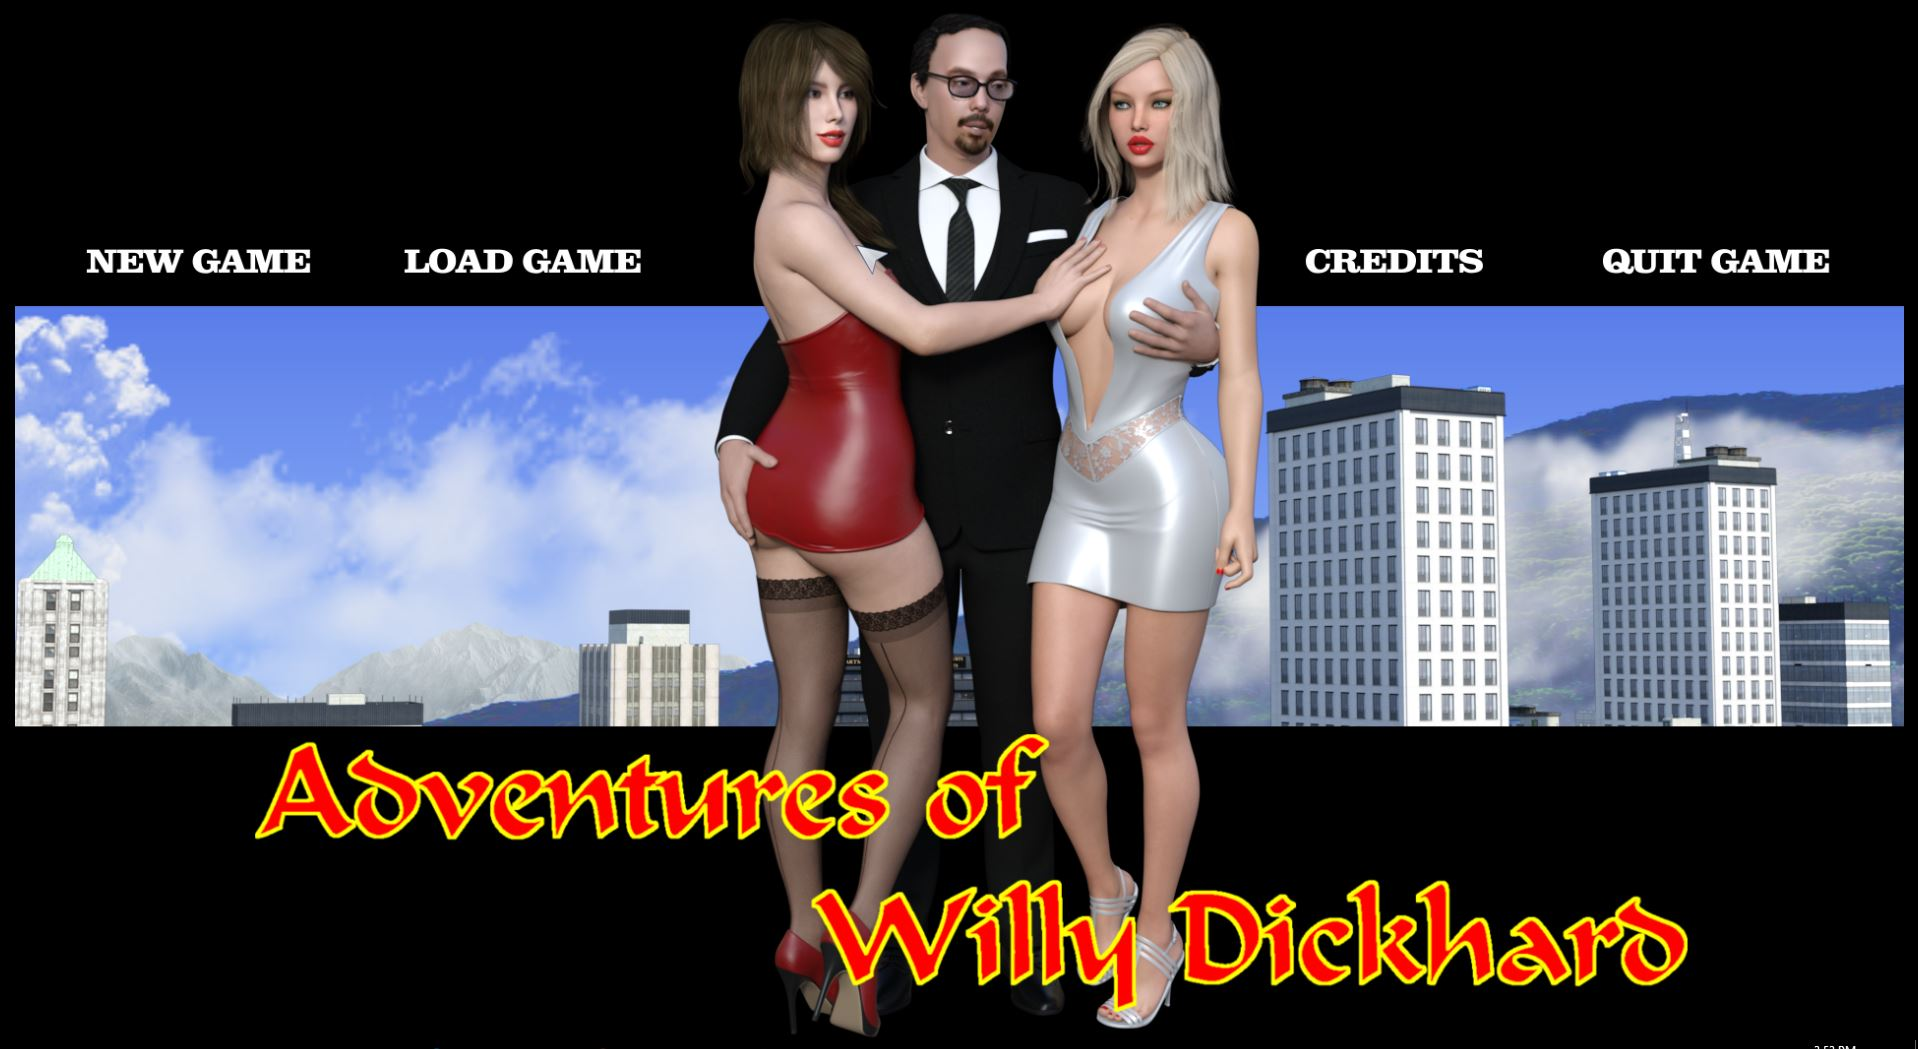 Adventure of Willy D